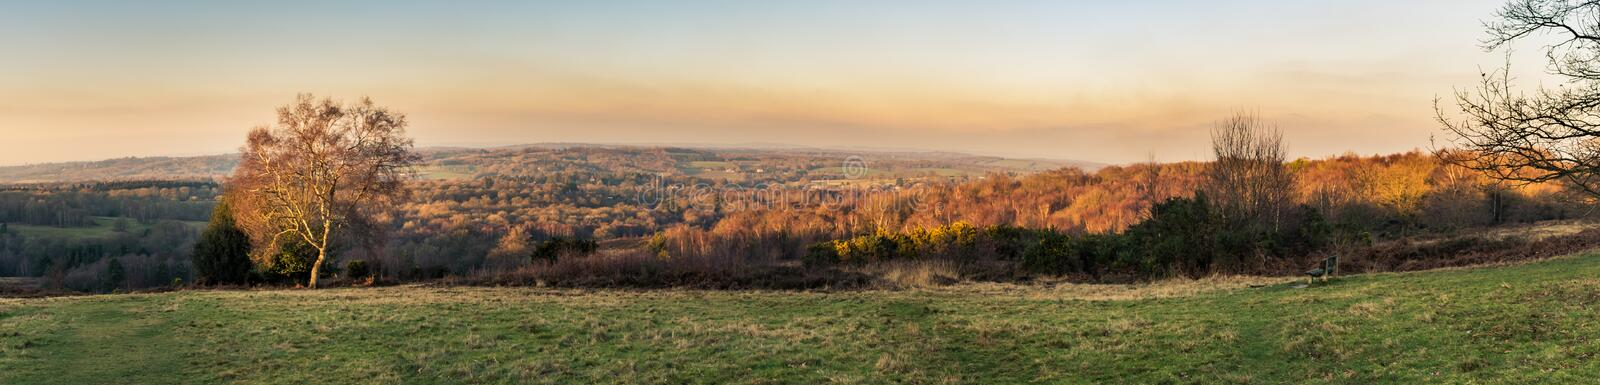 Panoramic view of sunset over the Ashdown Forest in Sussex, England, UK on an evening in winter, with a tree lit up by the sun stock images